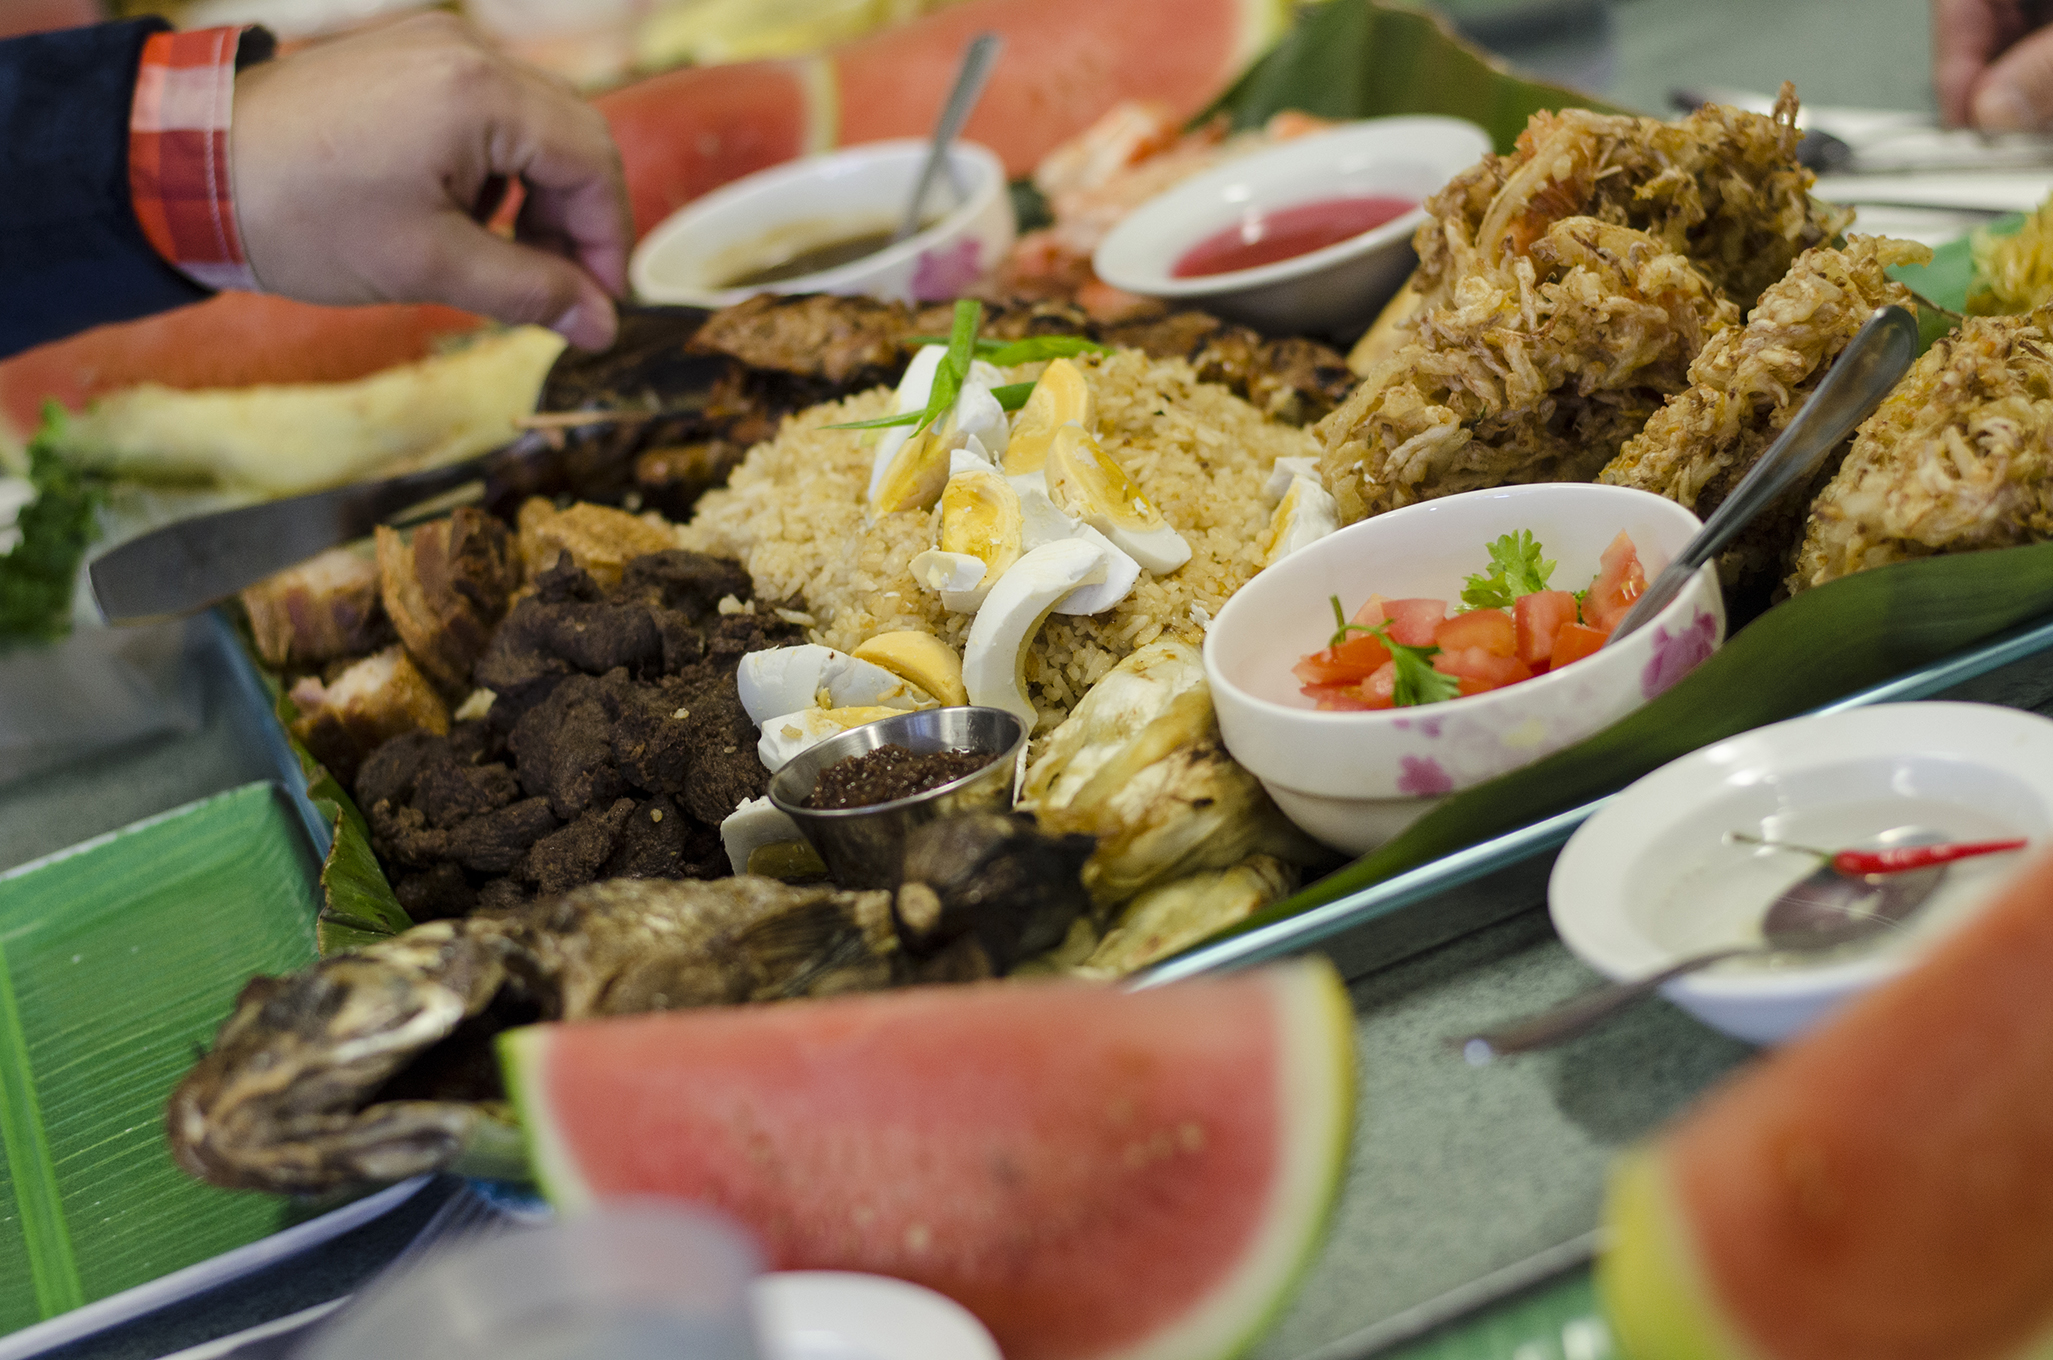 It's a Boodle Fight! Traditional Filipino cuisine served up in Windsor, Ontario.